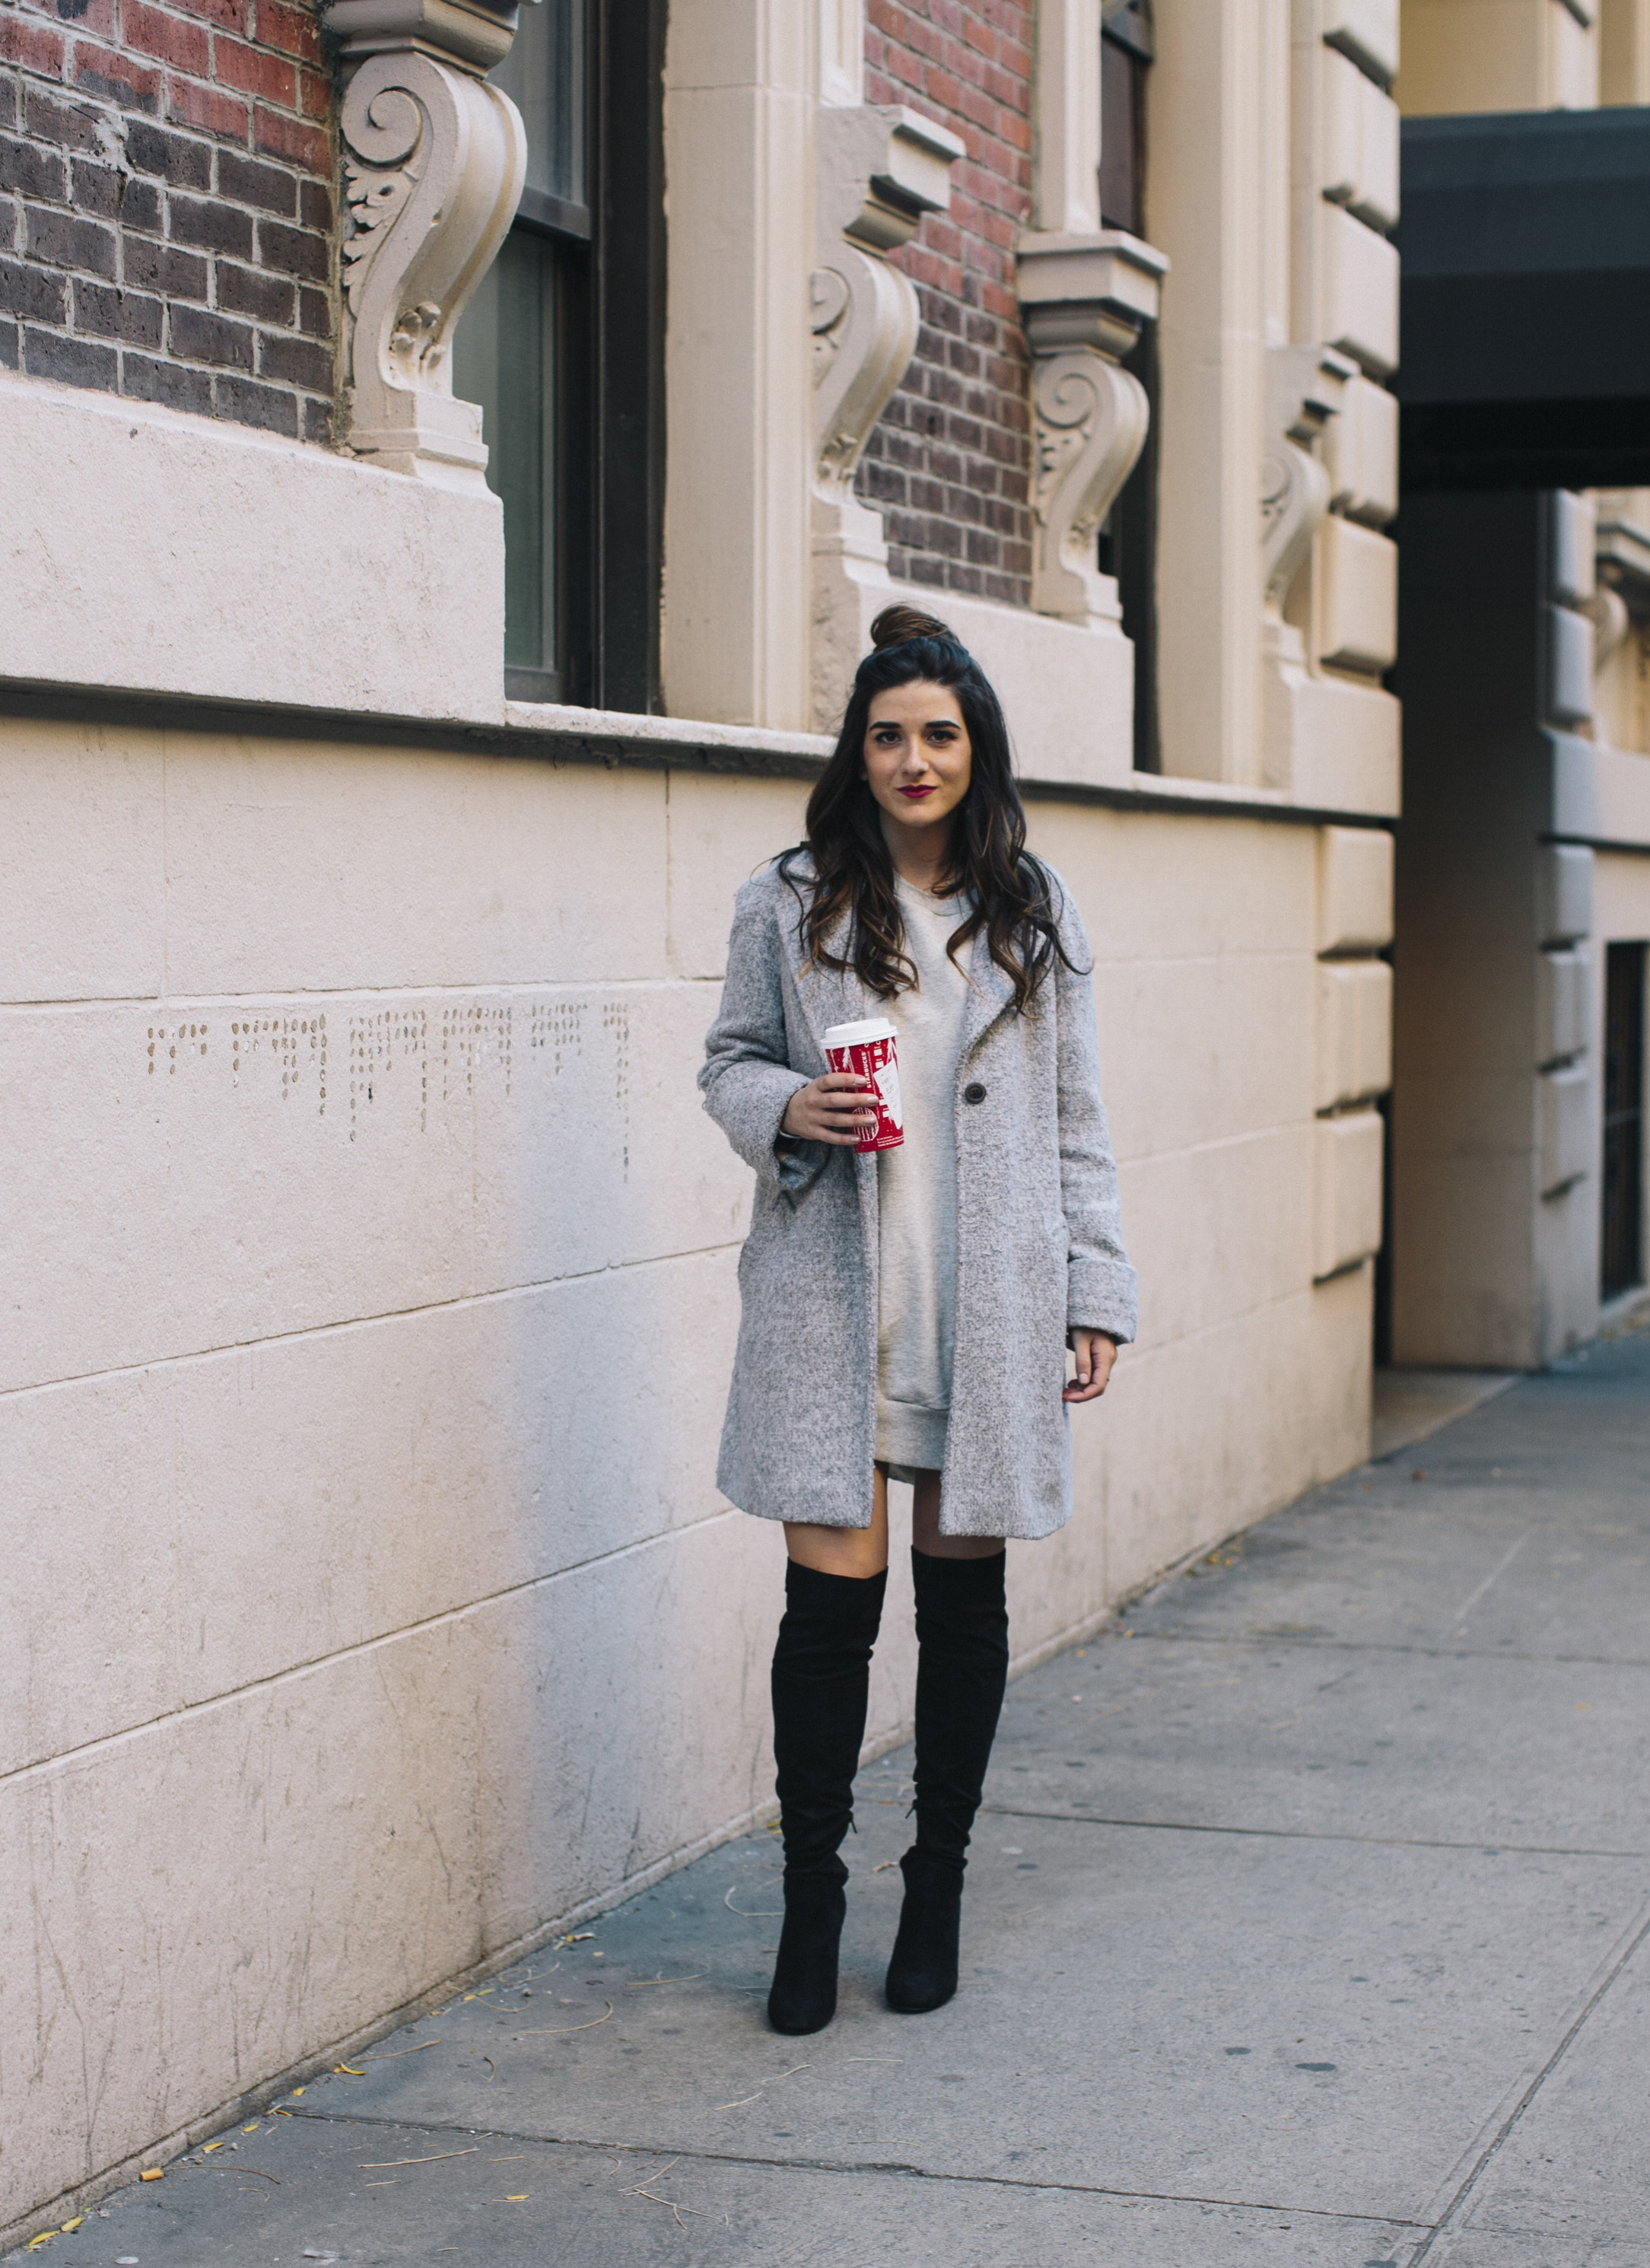 All Grey Look OTK Boots Why I Hate Fashion Week Esther Santer Fashion Blog Louboutins & Love NYC Street Style Blogger Outfit OOTD Trendy Sweatshirt Dress Topknot Coat Women Girl Shoes Shopping Zara Accessories Beauty Monochome Wear Winter Look Clothes.jpg